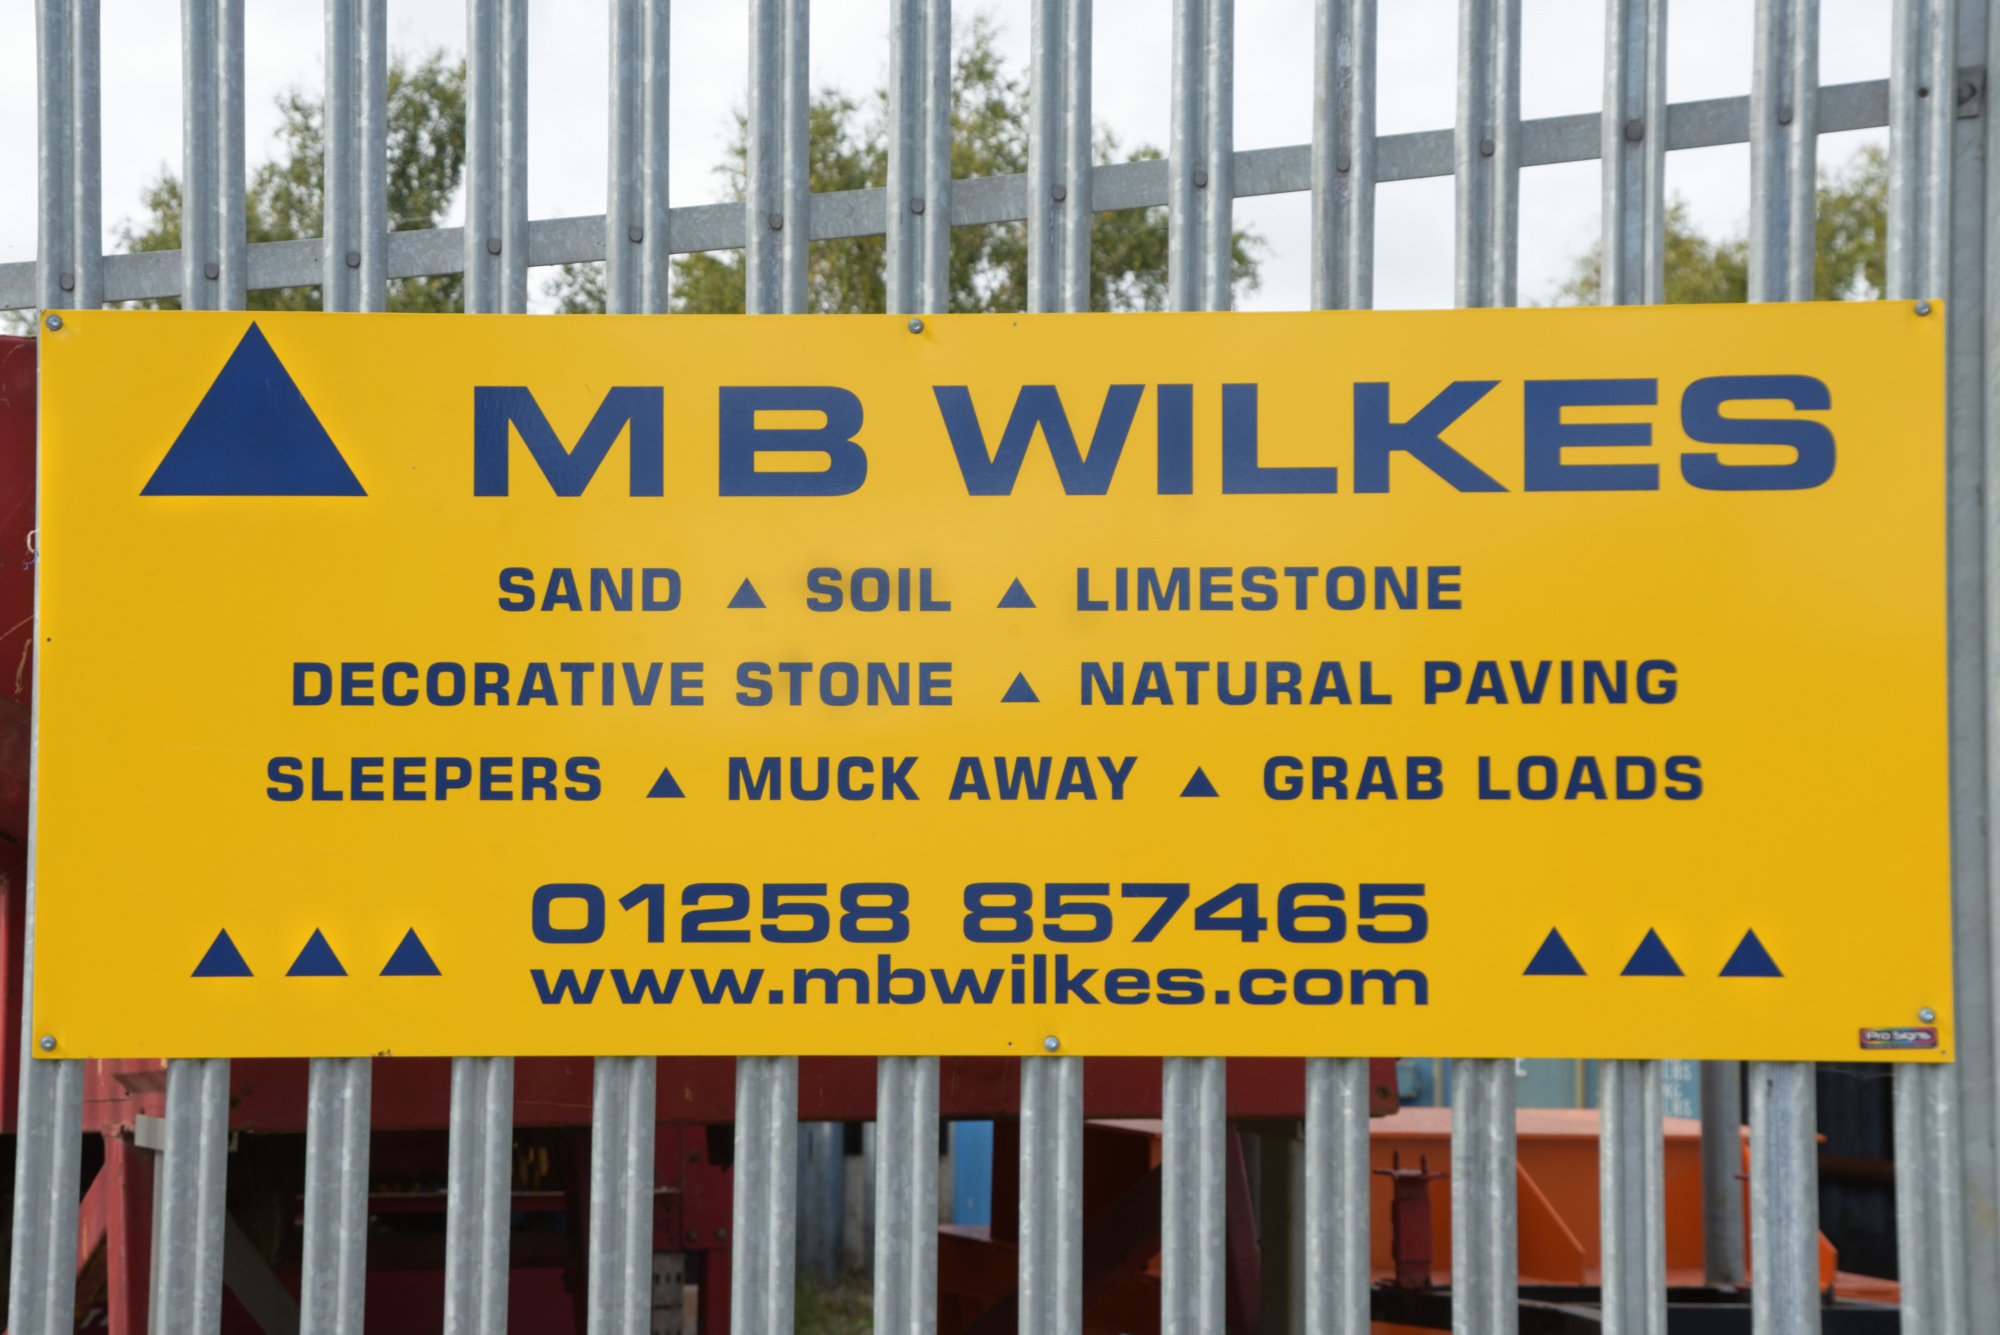 MB Wilkes What We Offer